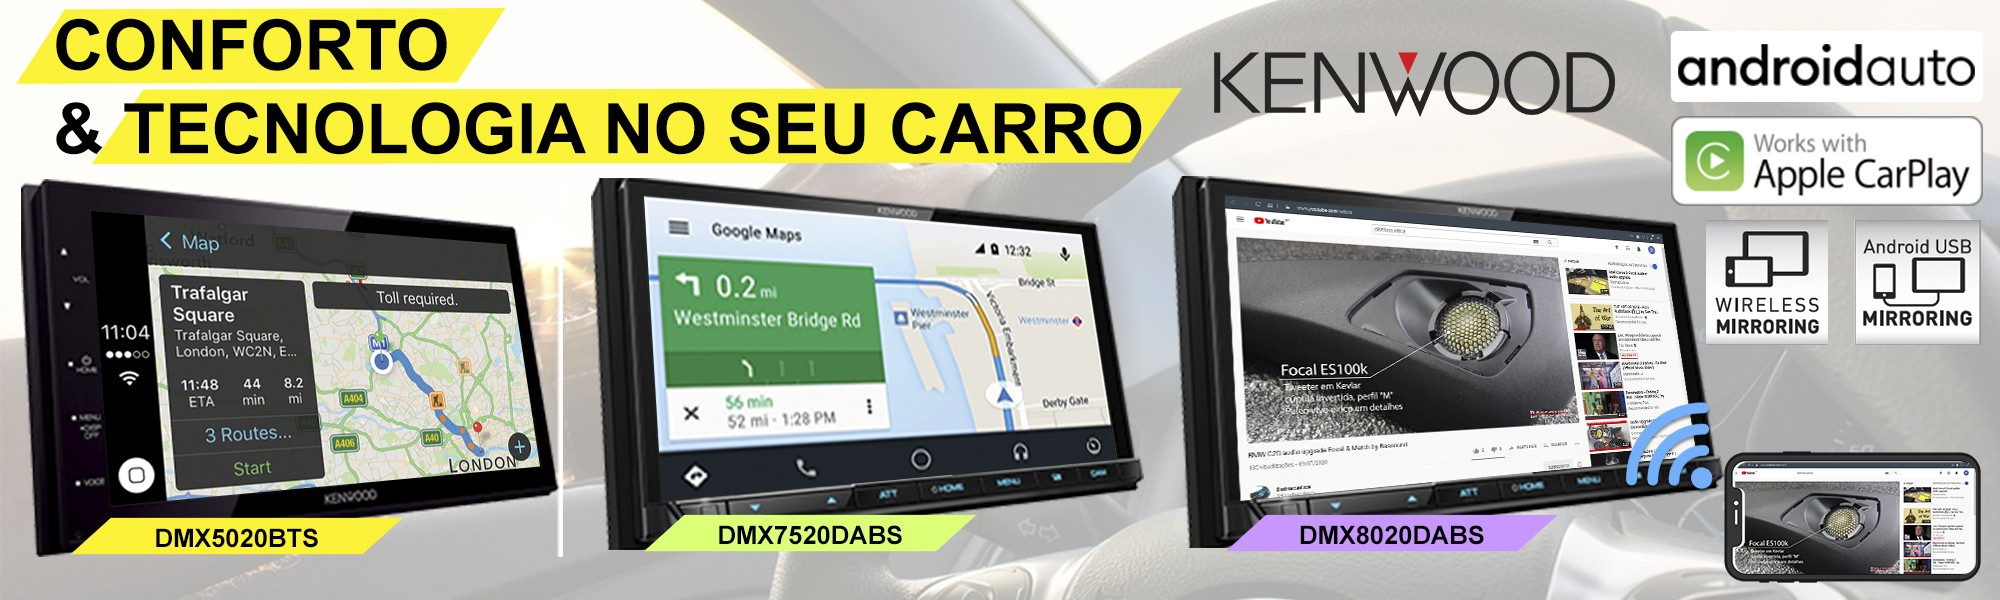 Carplay Android Auto Kenwood